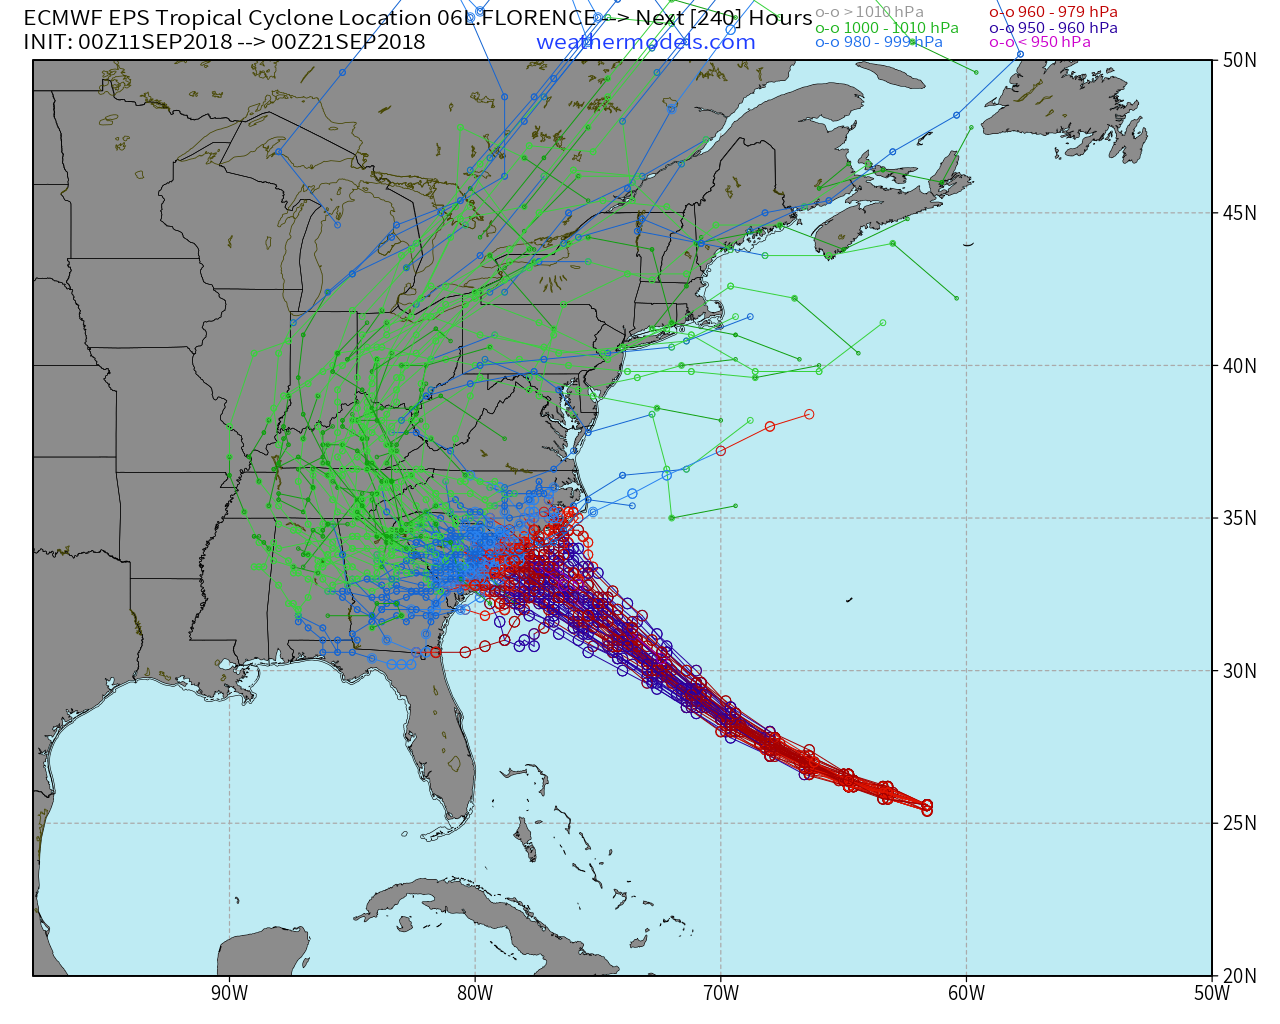 There Is Still Some Spread In Regards To The Exact Location Where Hurricane Florence Makes Landfall